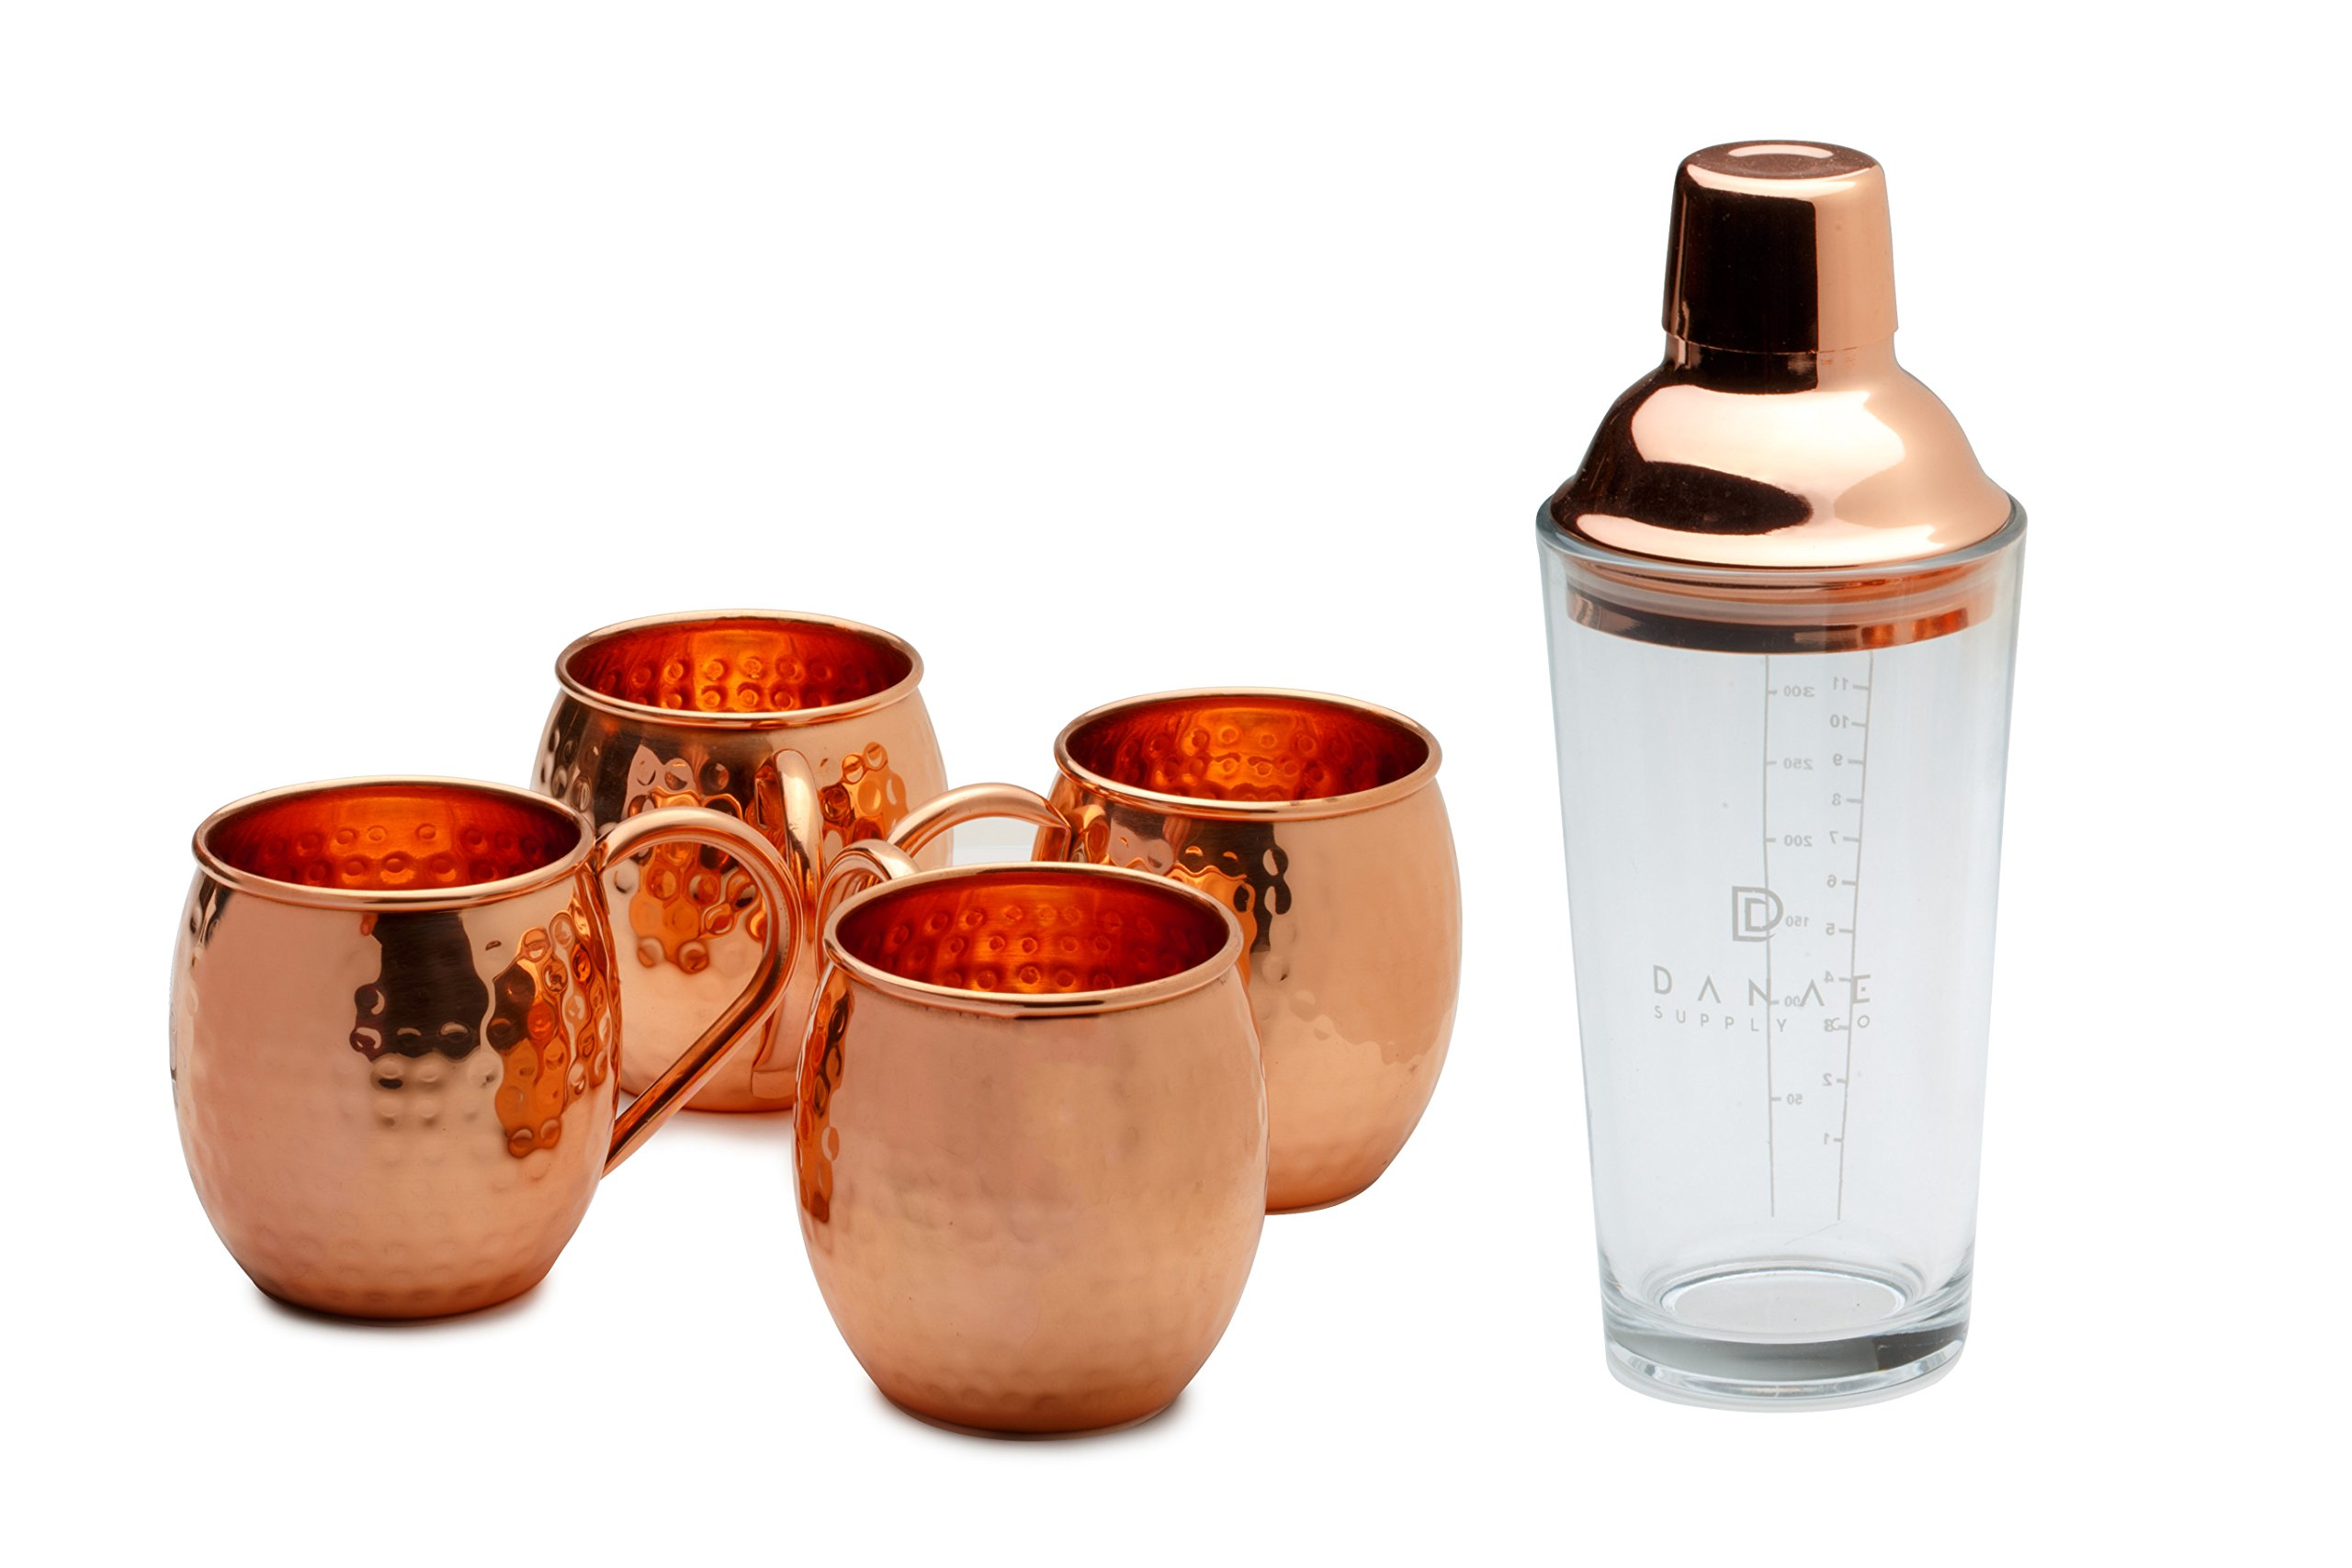 Moscow Mule Copper Mugs Set with Glass Cocktail Shaker (4, Barrel Mug)